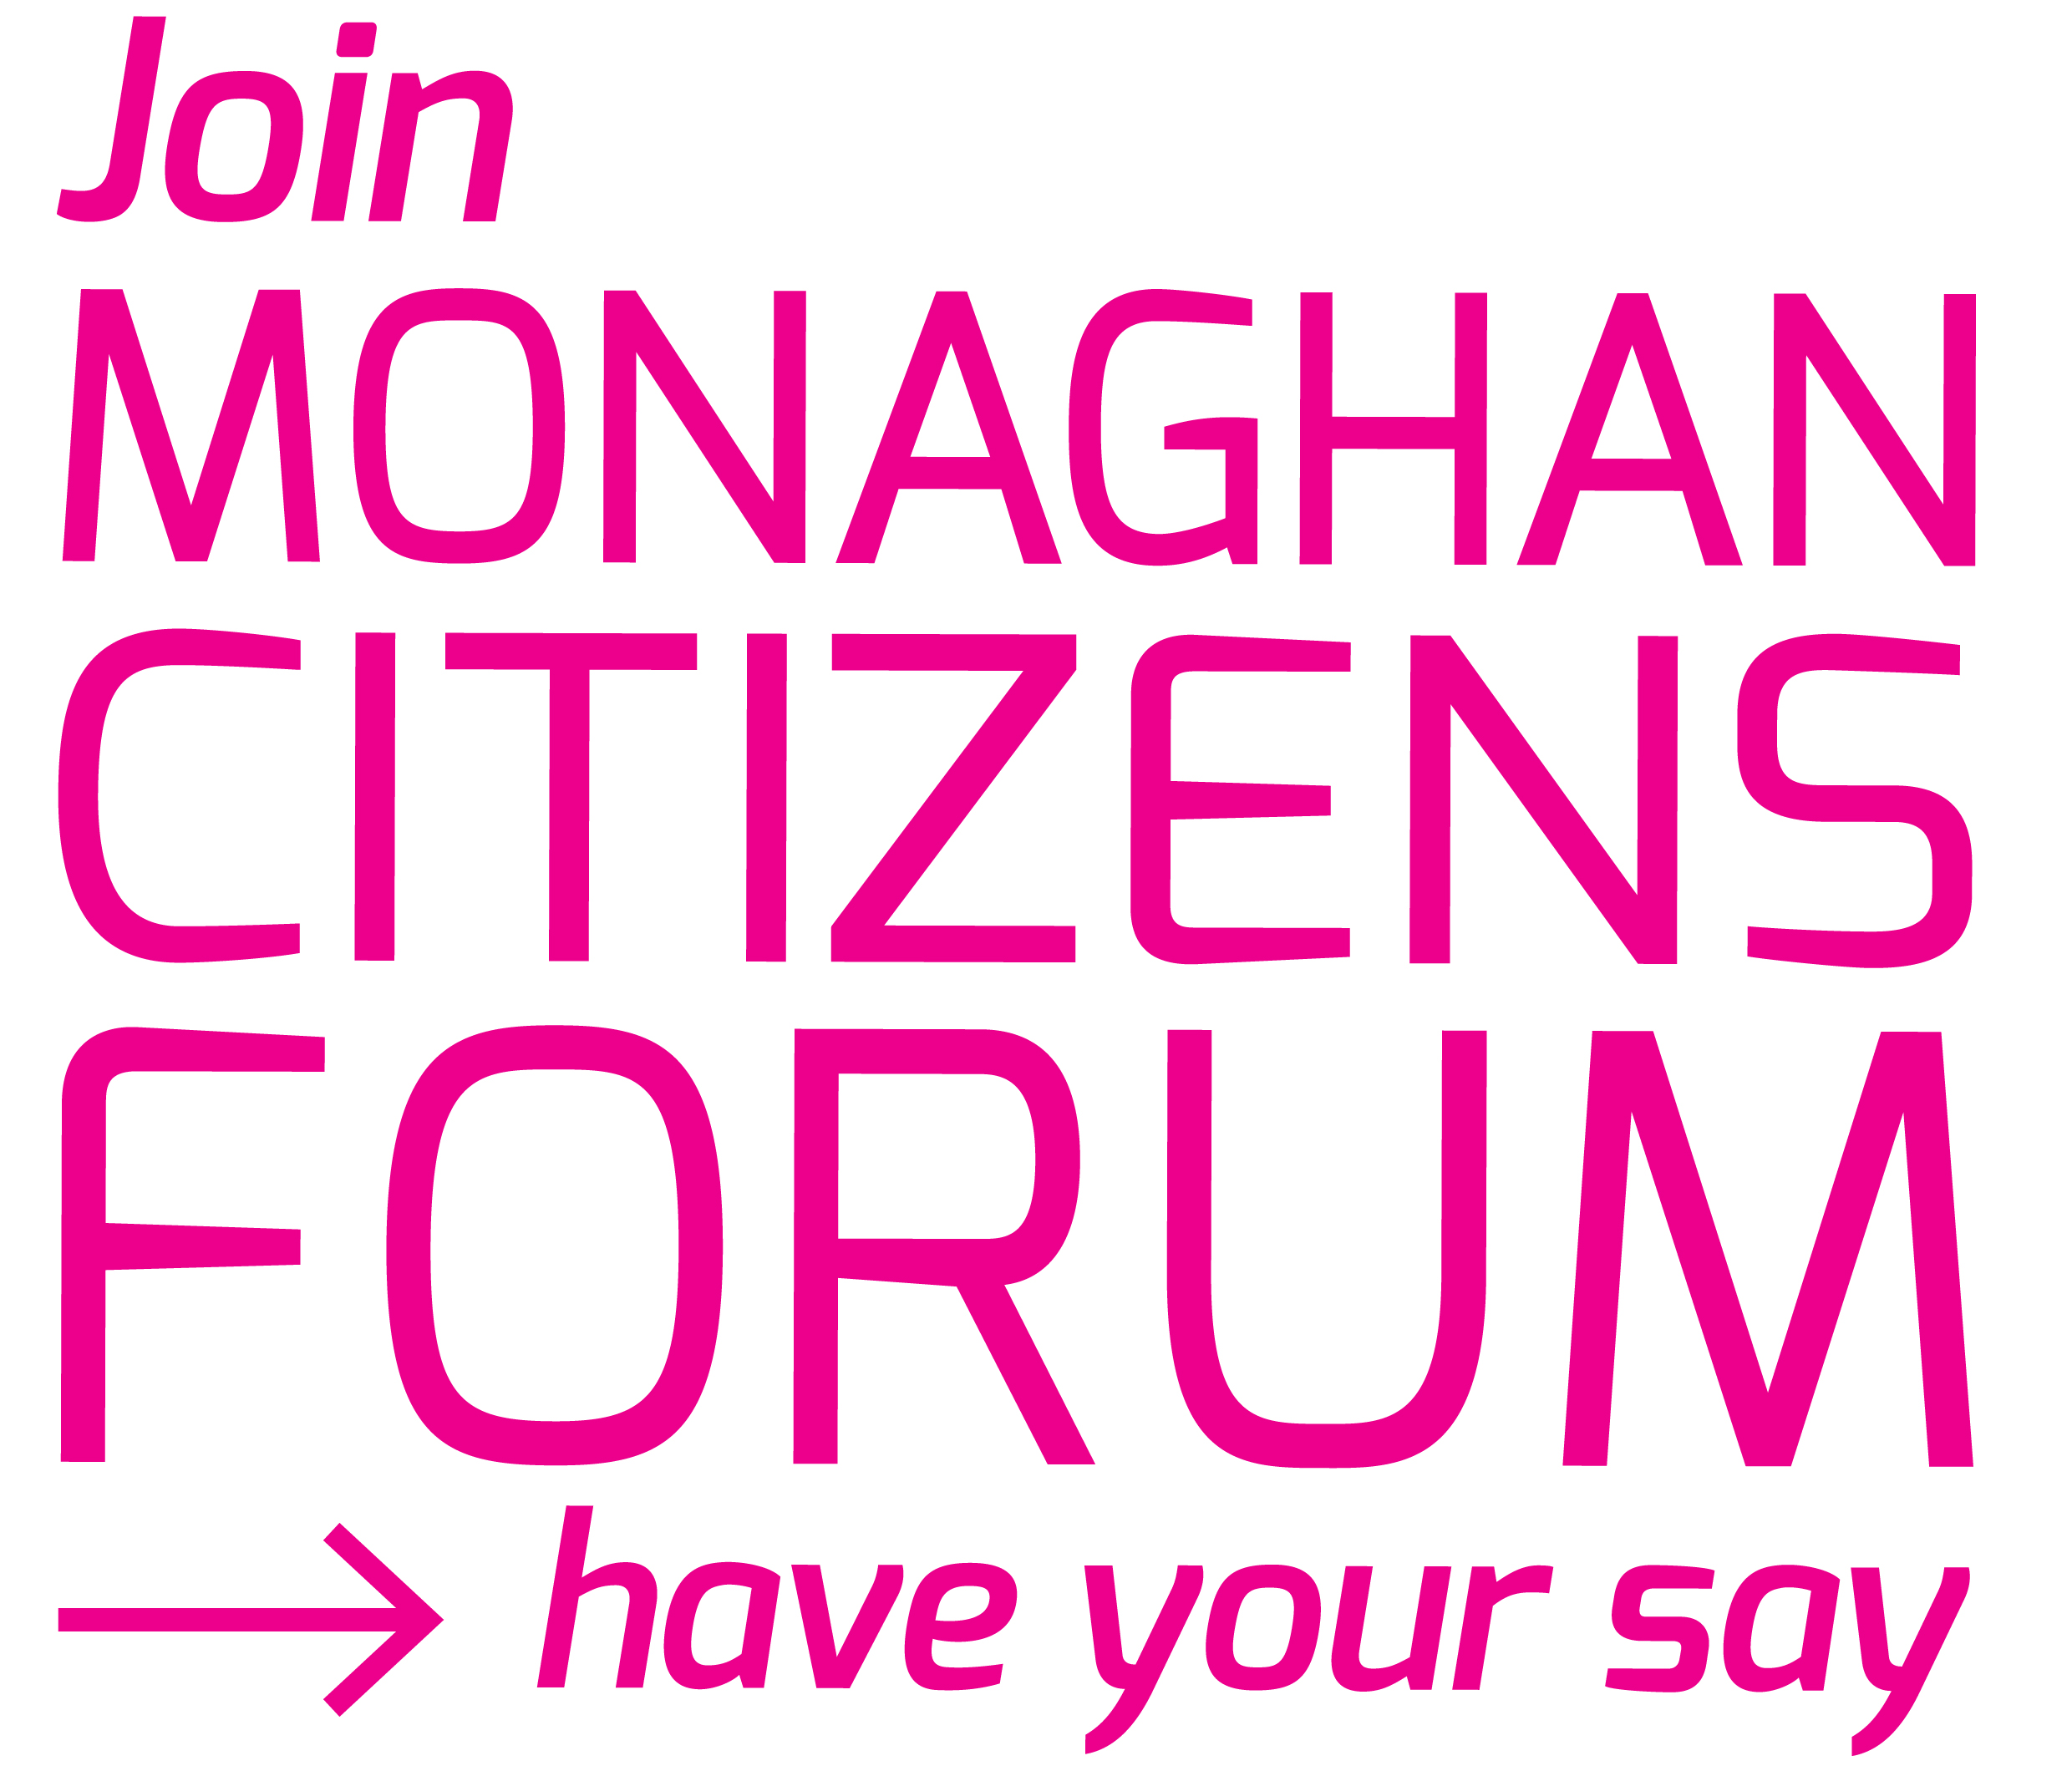 Join Monaghan Citizens Forum and have your say